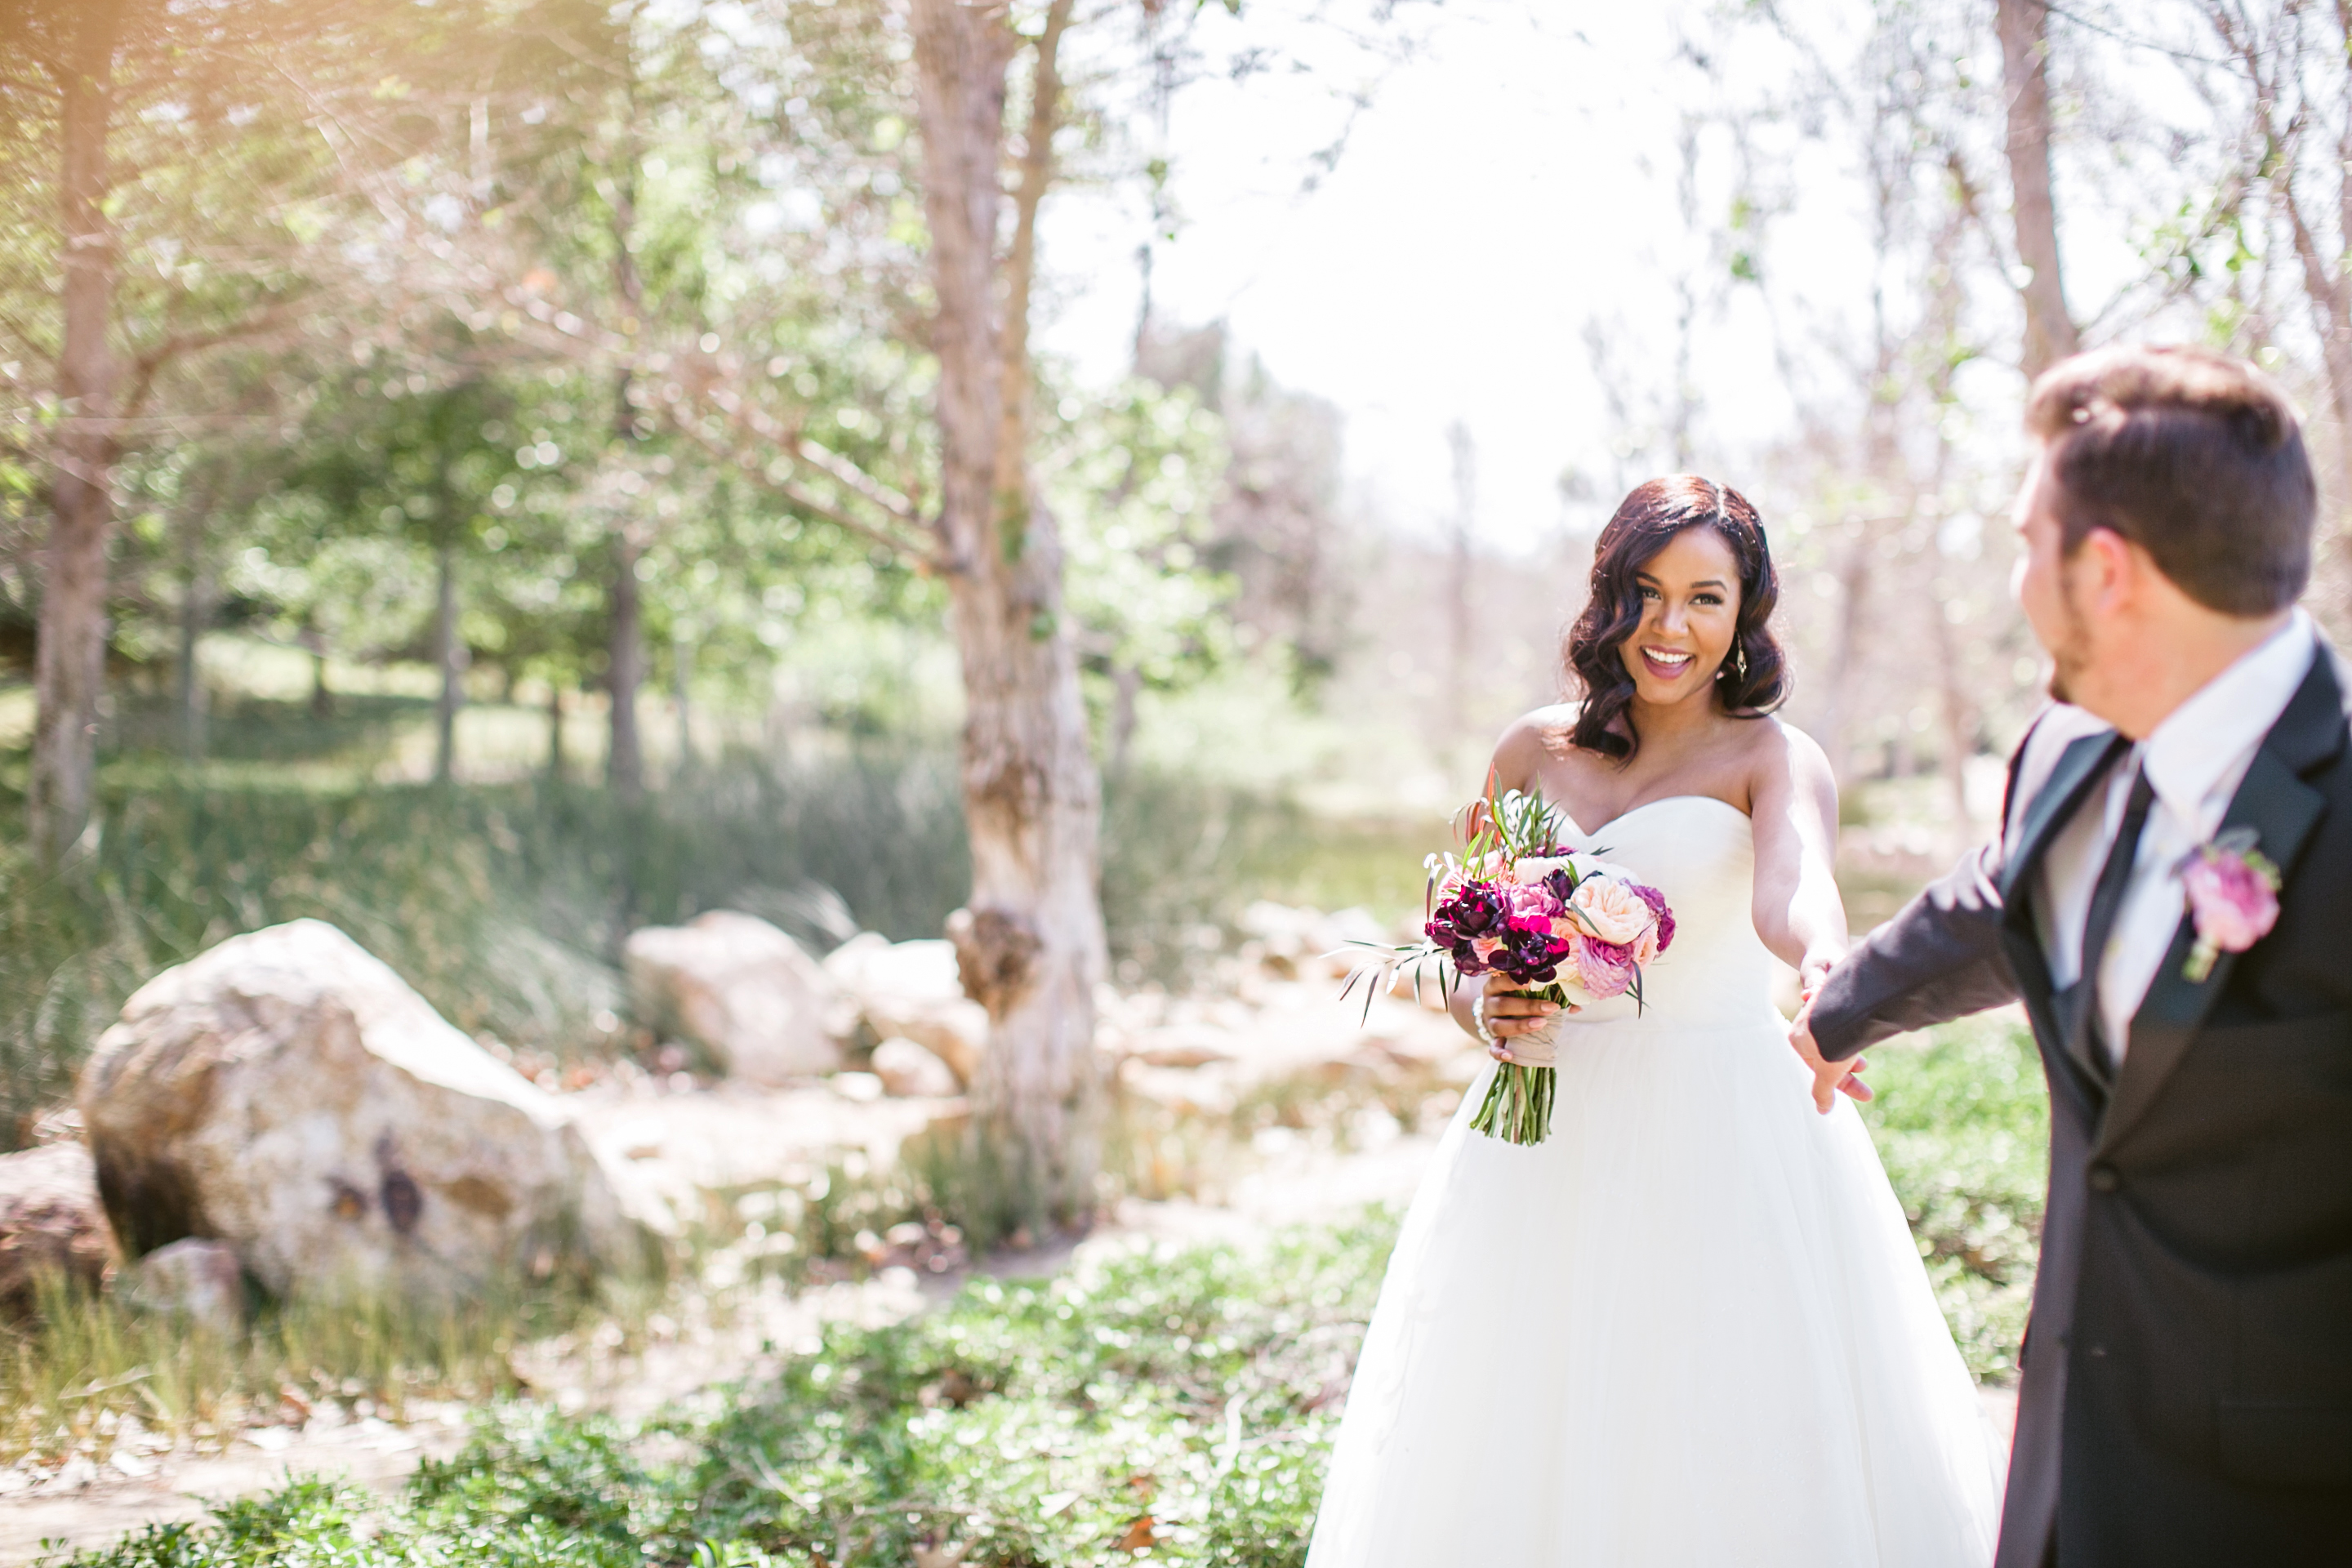 Nikon Wedding Photography: Jasmine Star On The Photographer-Client Relationship And